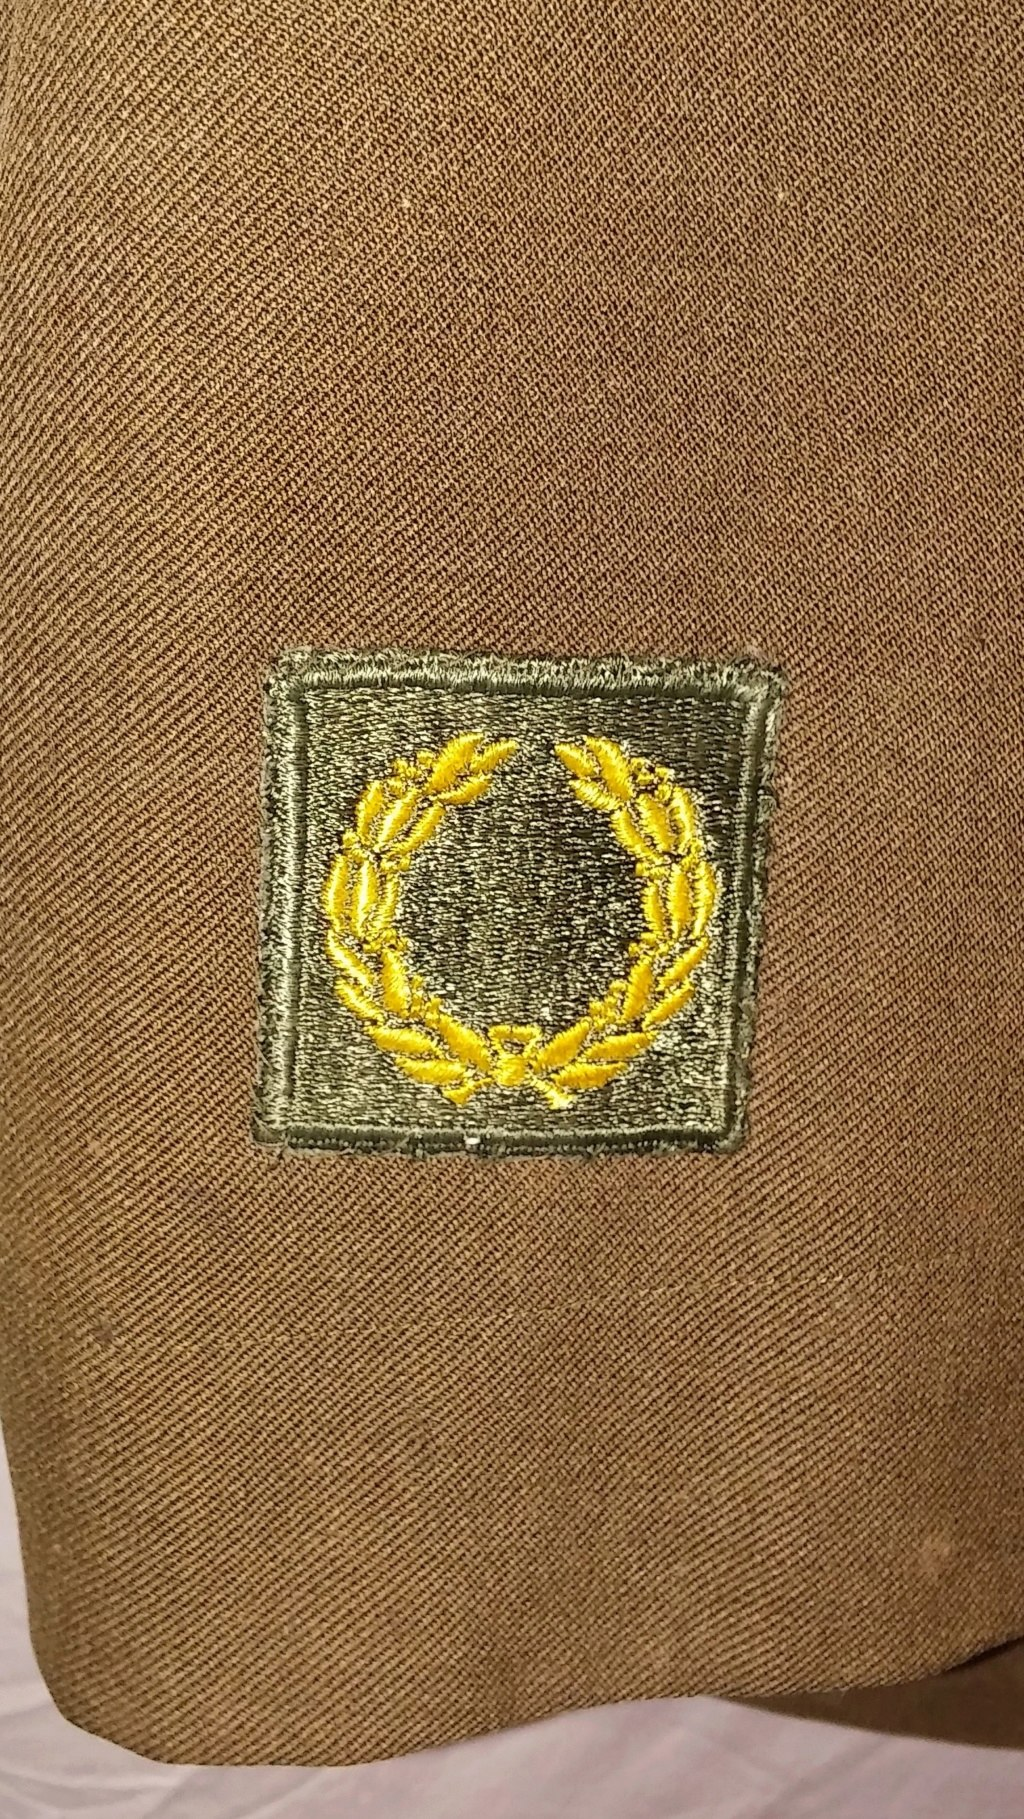 US Army 78th Division Technical Sergeant Uniform and Relics 19700277